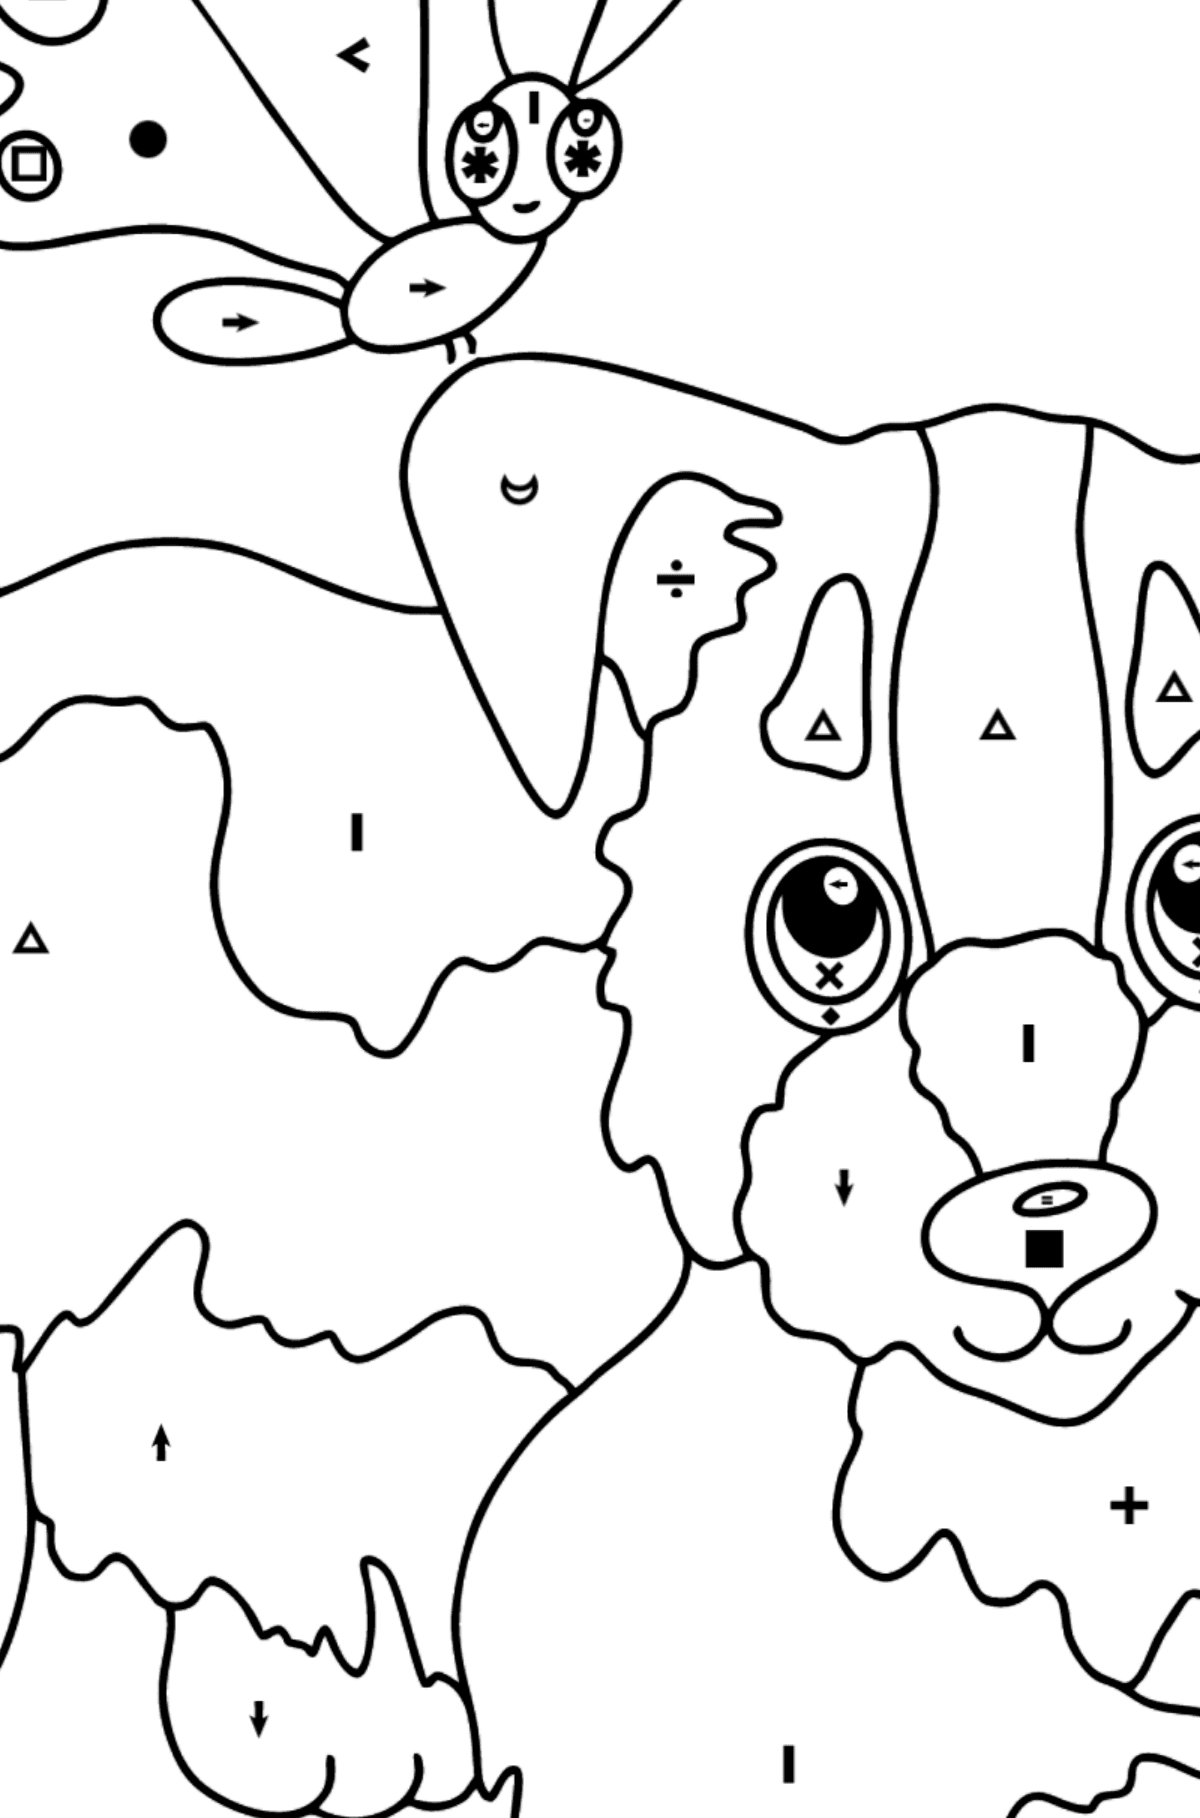 Coloring Page - A Dog is Playing with a Butterfly - Coloring by Symbols for Kids